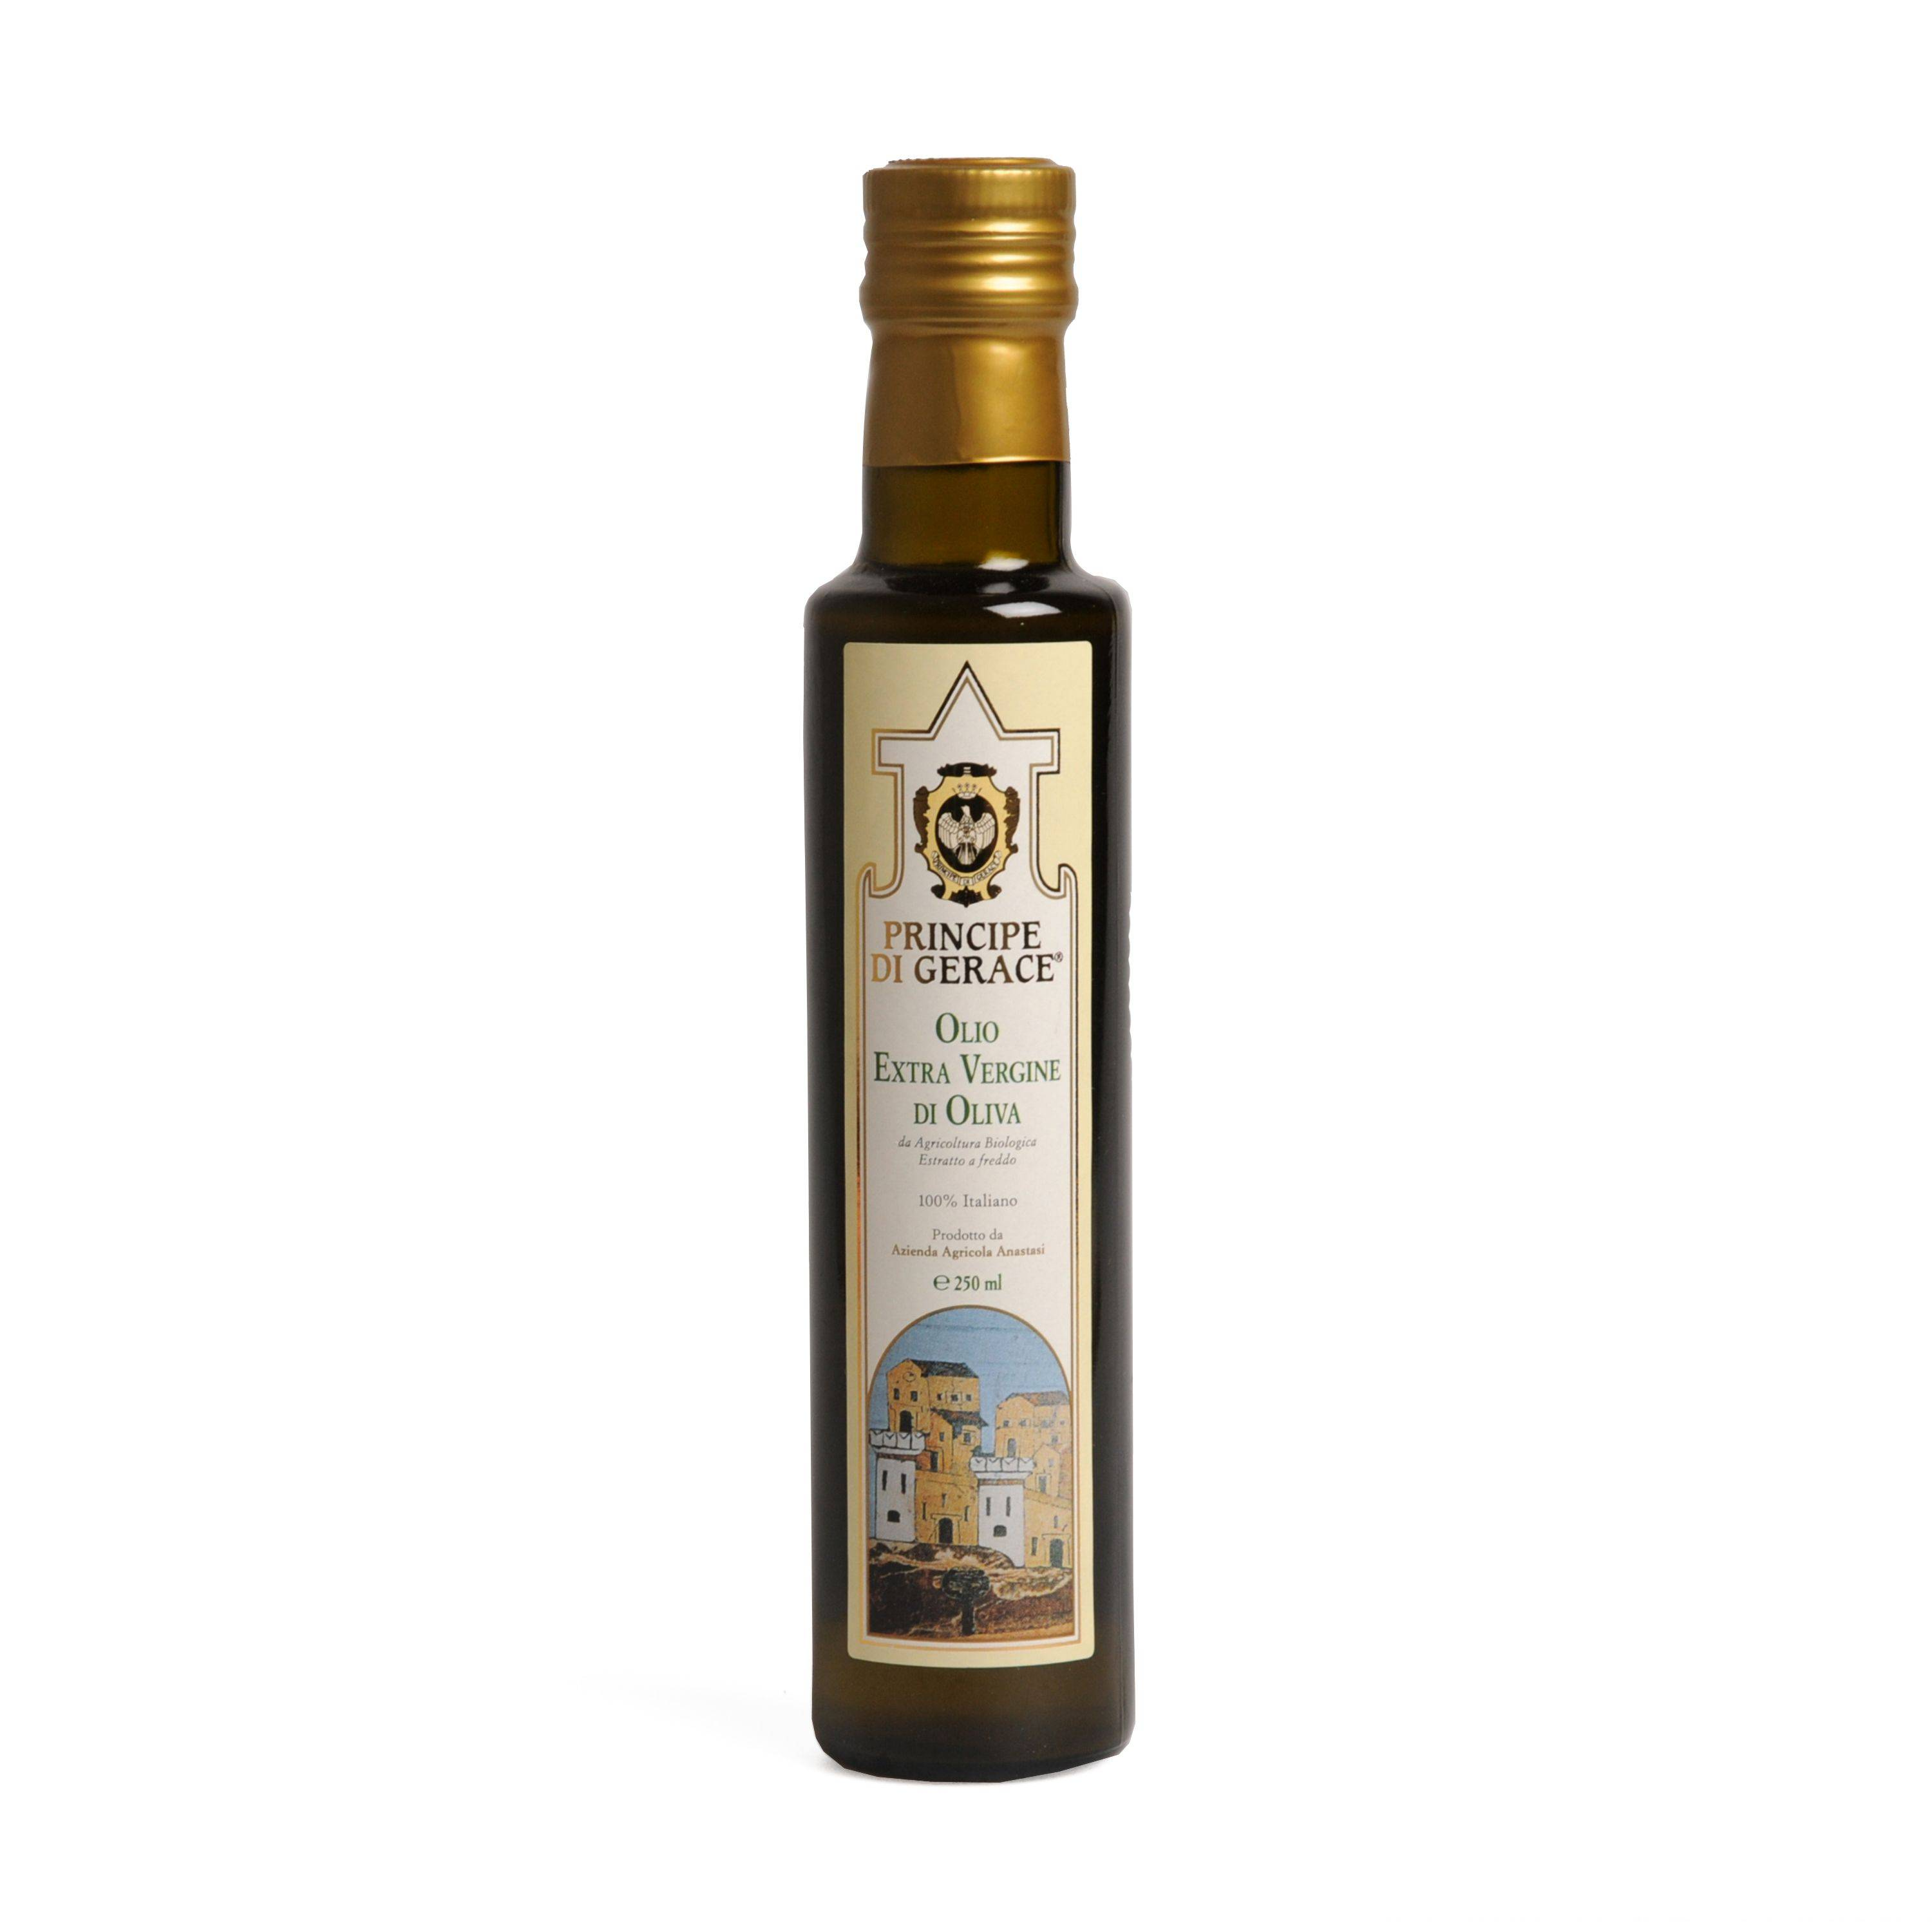 Dille&Kamille Huile d'olive extra-vierge, biologique 250ml